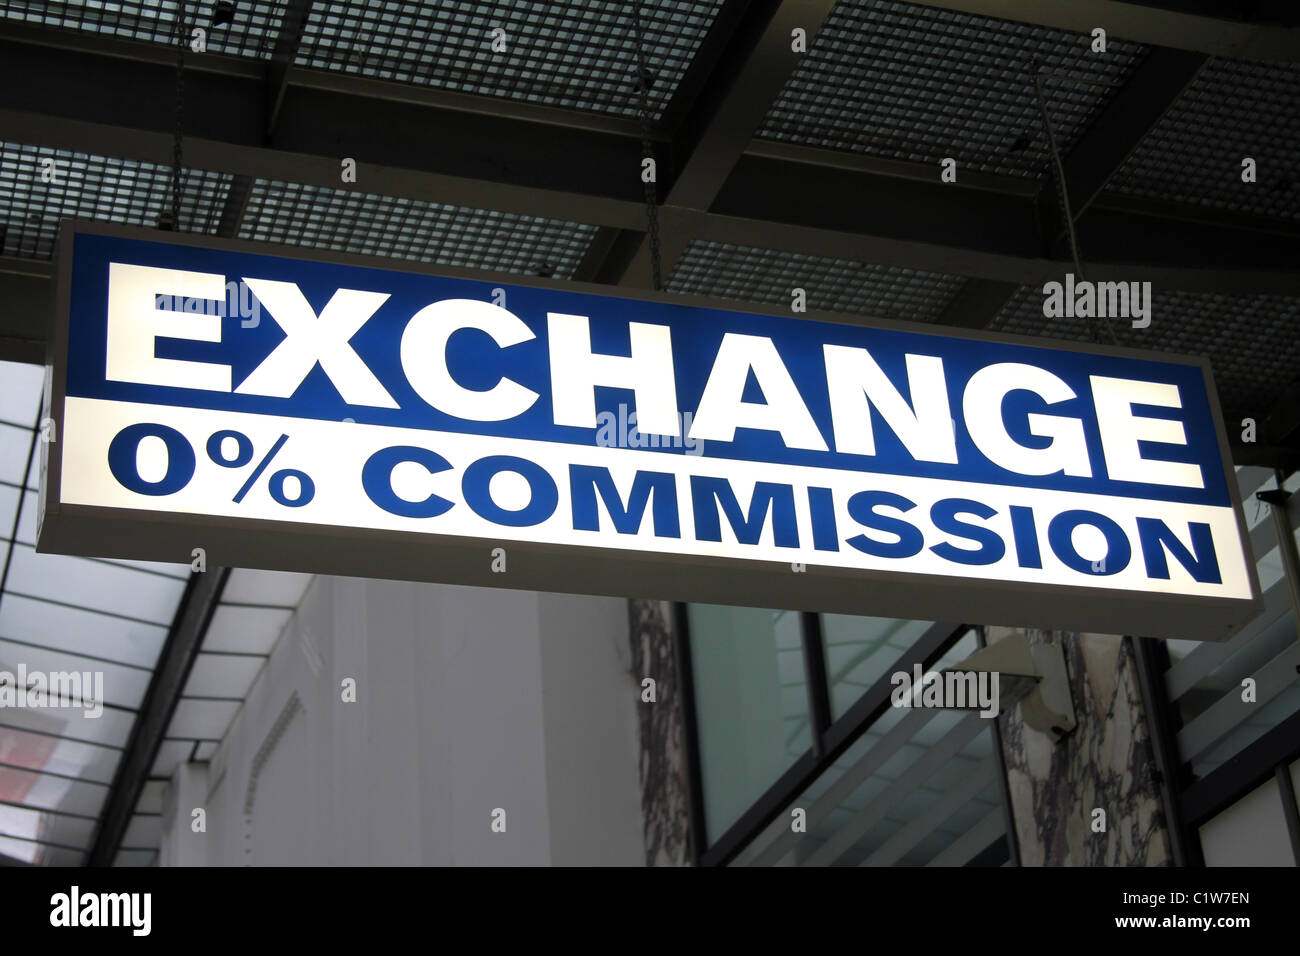 bureau de change 0 commission money exchange sign in. Black Bedroom Furniture Sets. Home Design Ideas